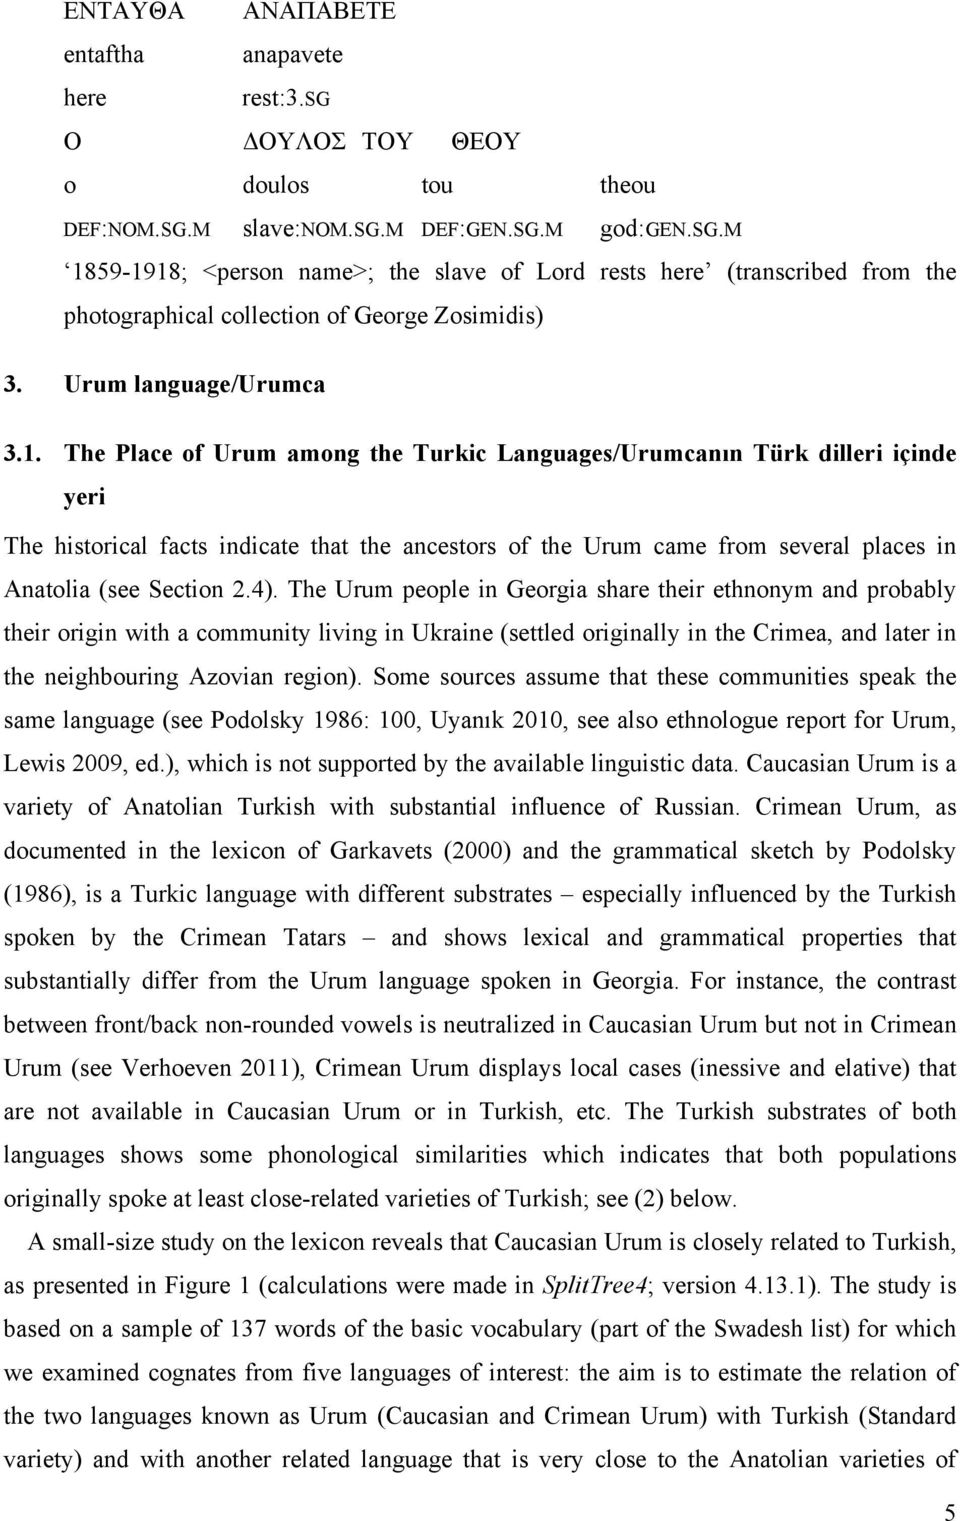 The Place of Urum among the Turkic Languages/Urumcanın Türk dilleri içinde yeri The historical facts indicate that the ancestors of the Urum came from several places in Anatolia (see Section 2.4).